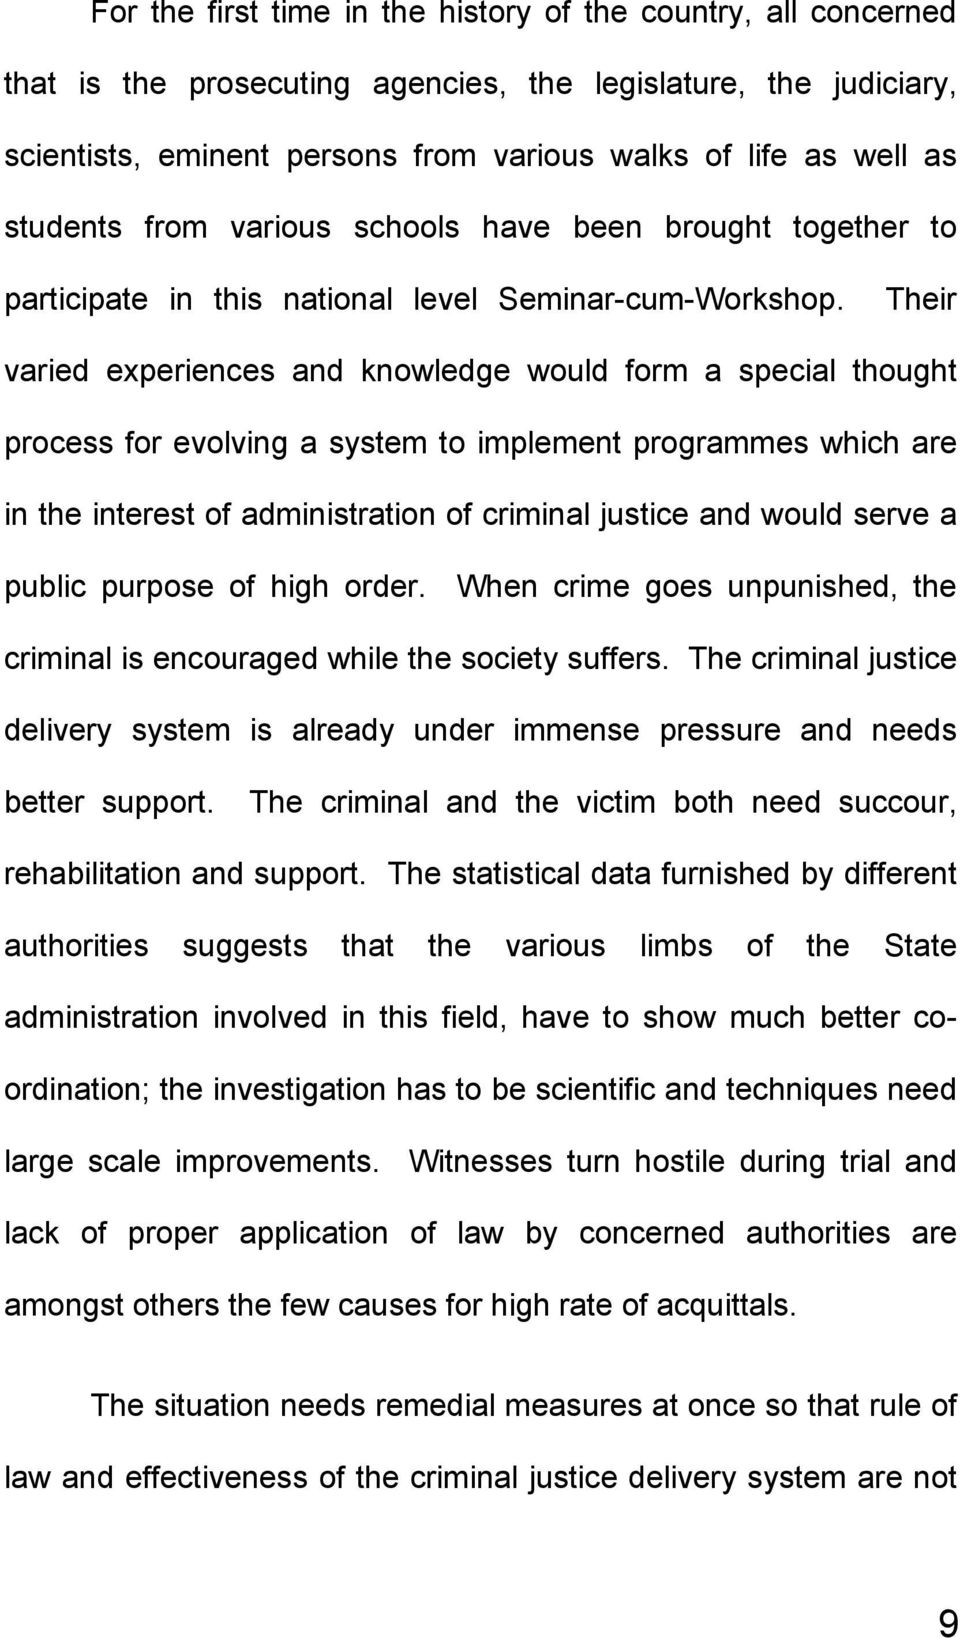 Their varied experiences and knowledge would form a special thought process for evolving a system to implement programmes which are in the interest of administration of criminal justice and would